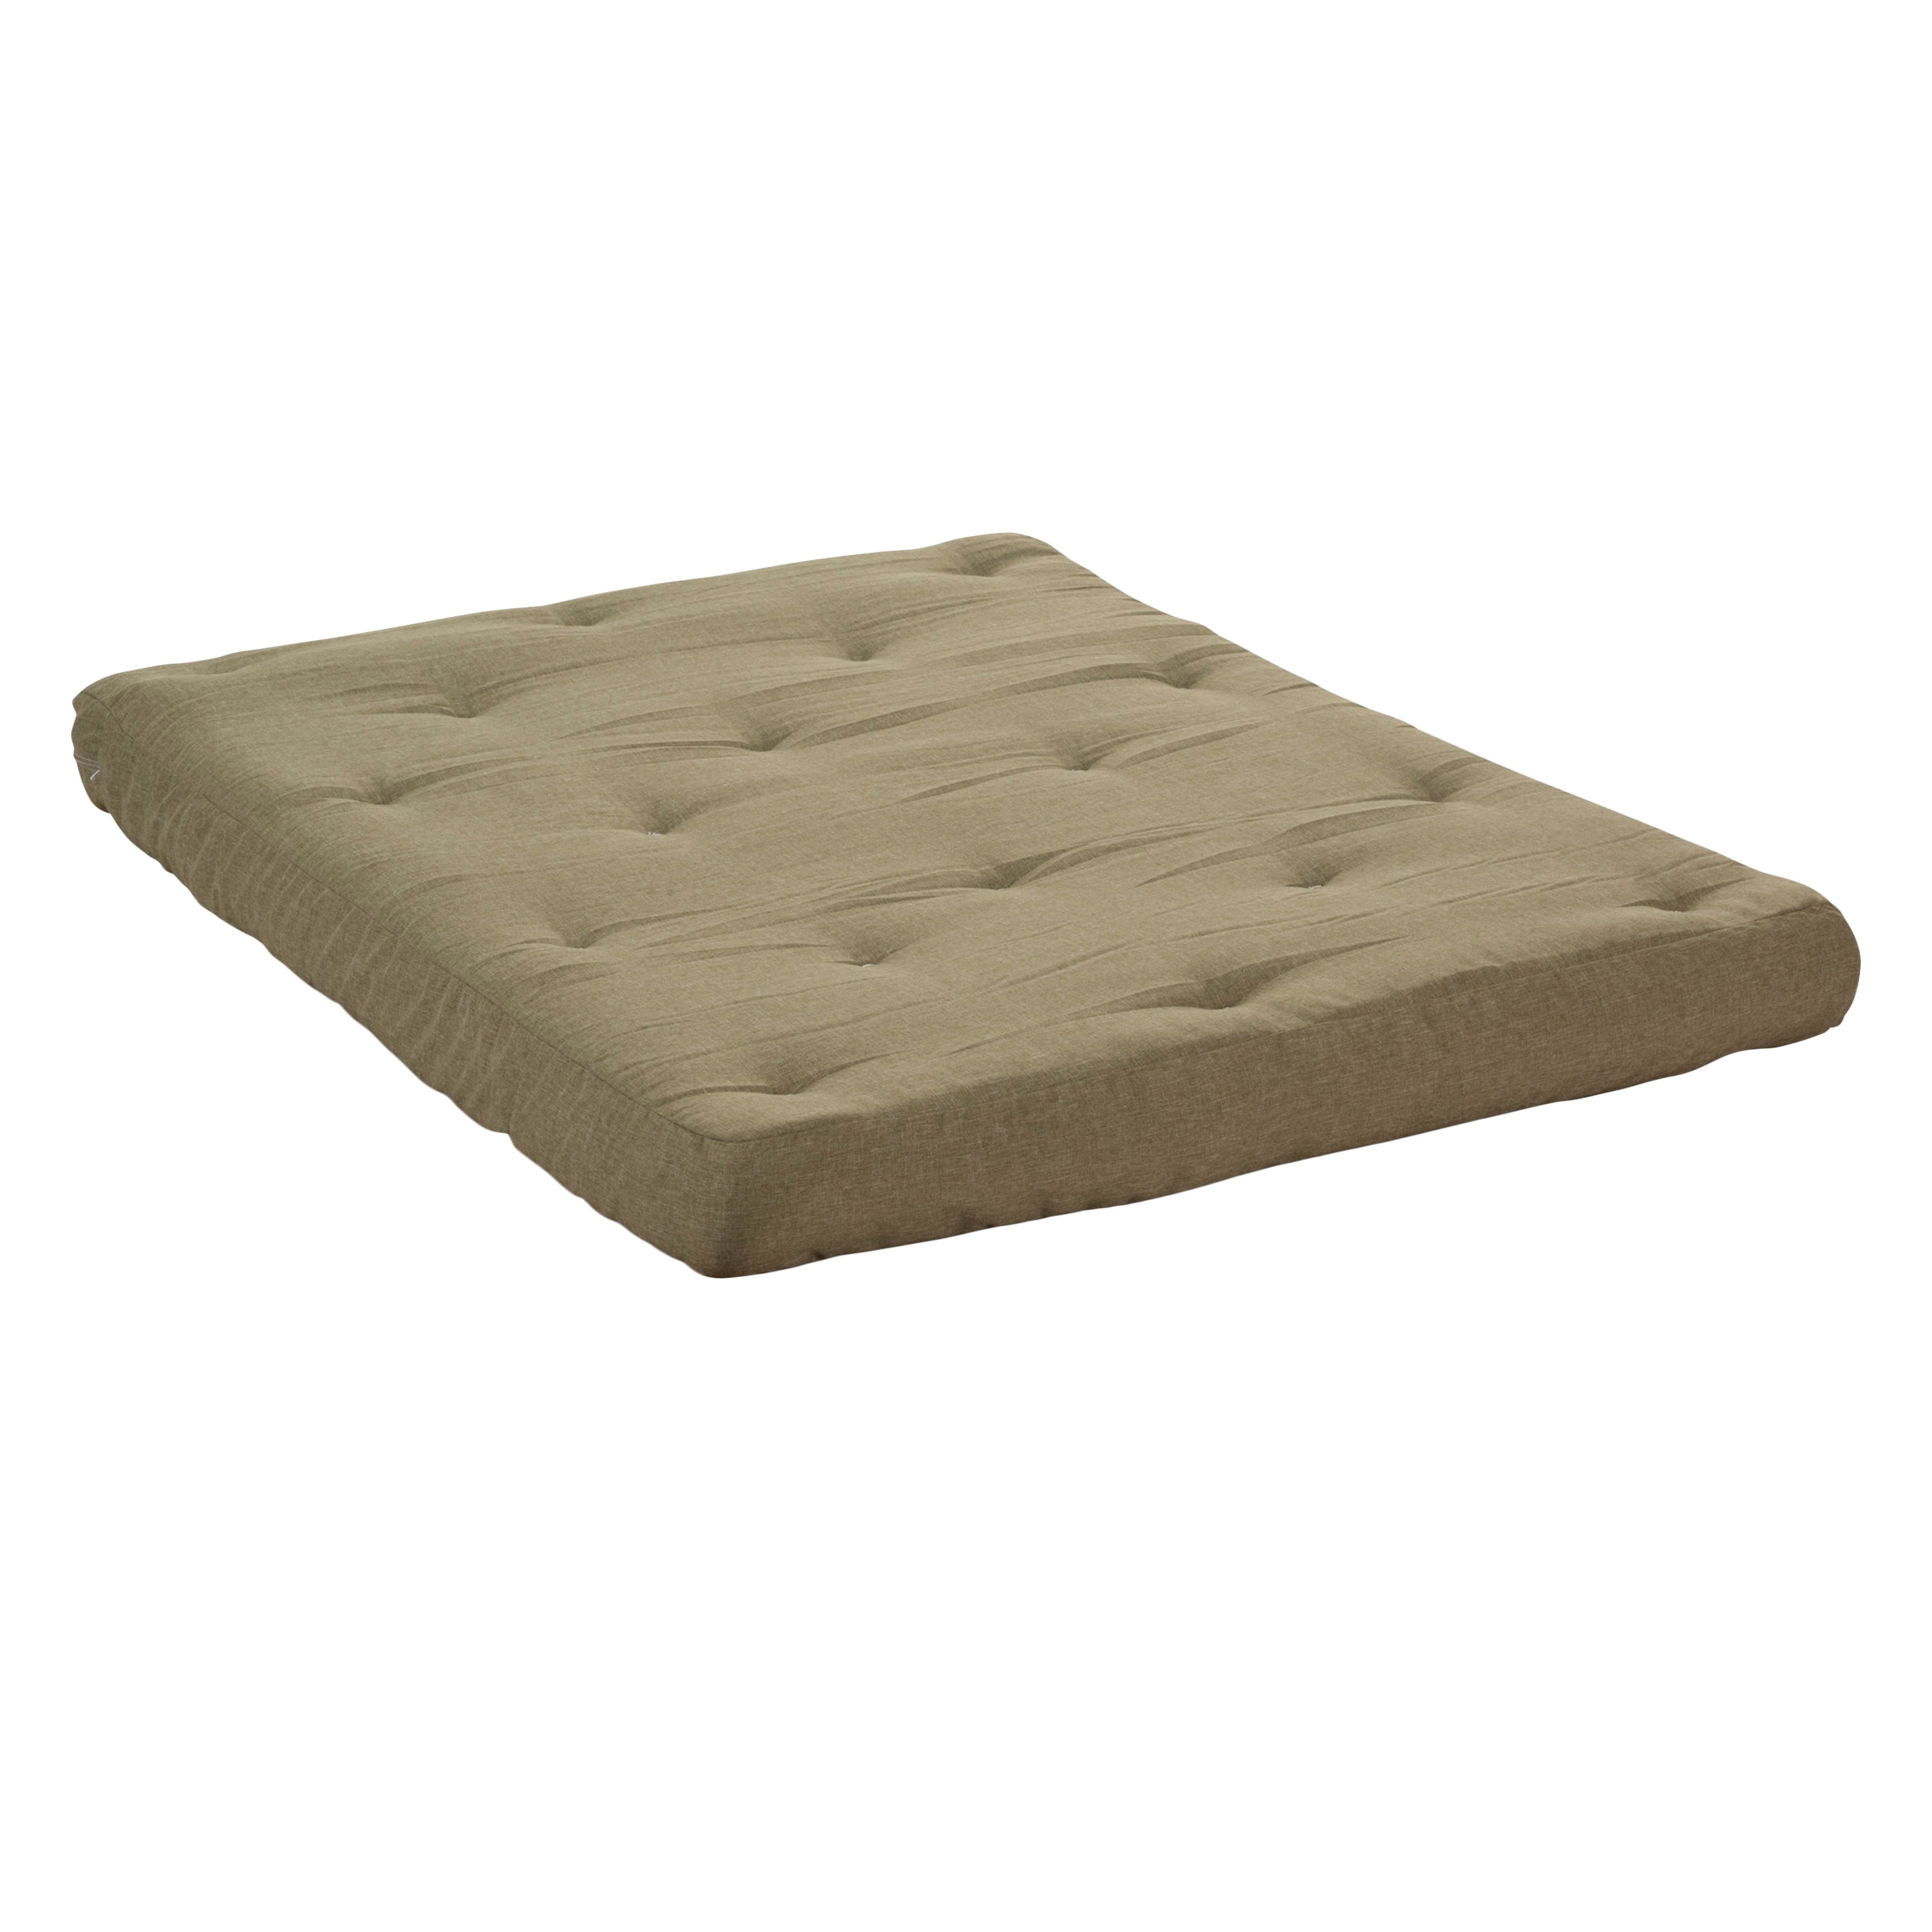 Serta Florence Futon Frame And Chestnut Cotton Certipur Foam Mattress On Free Shipping Today Com 2615260